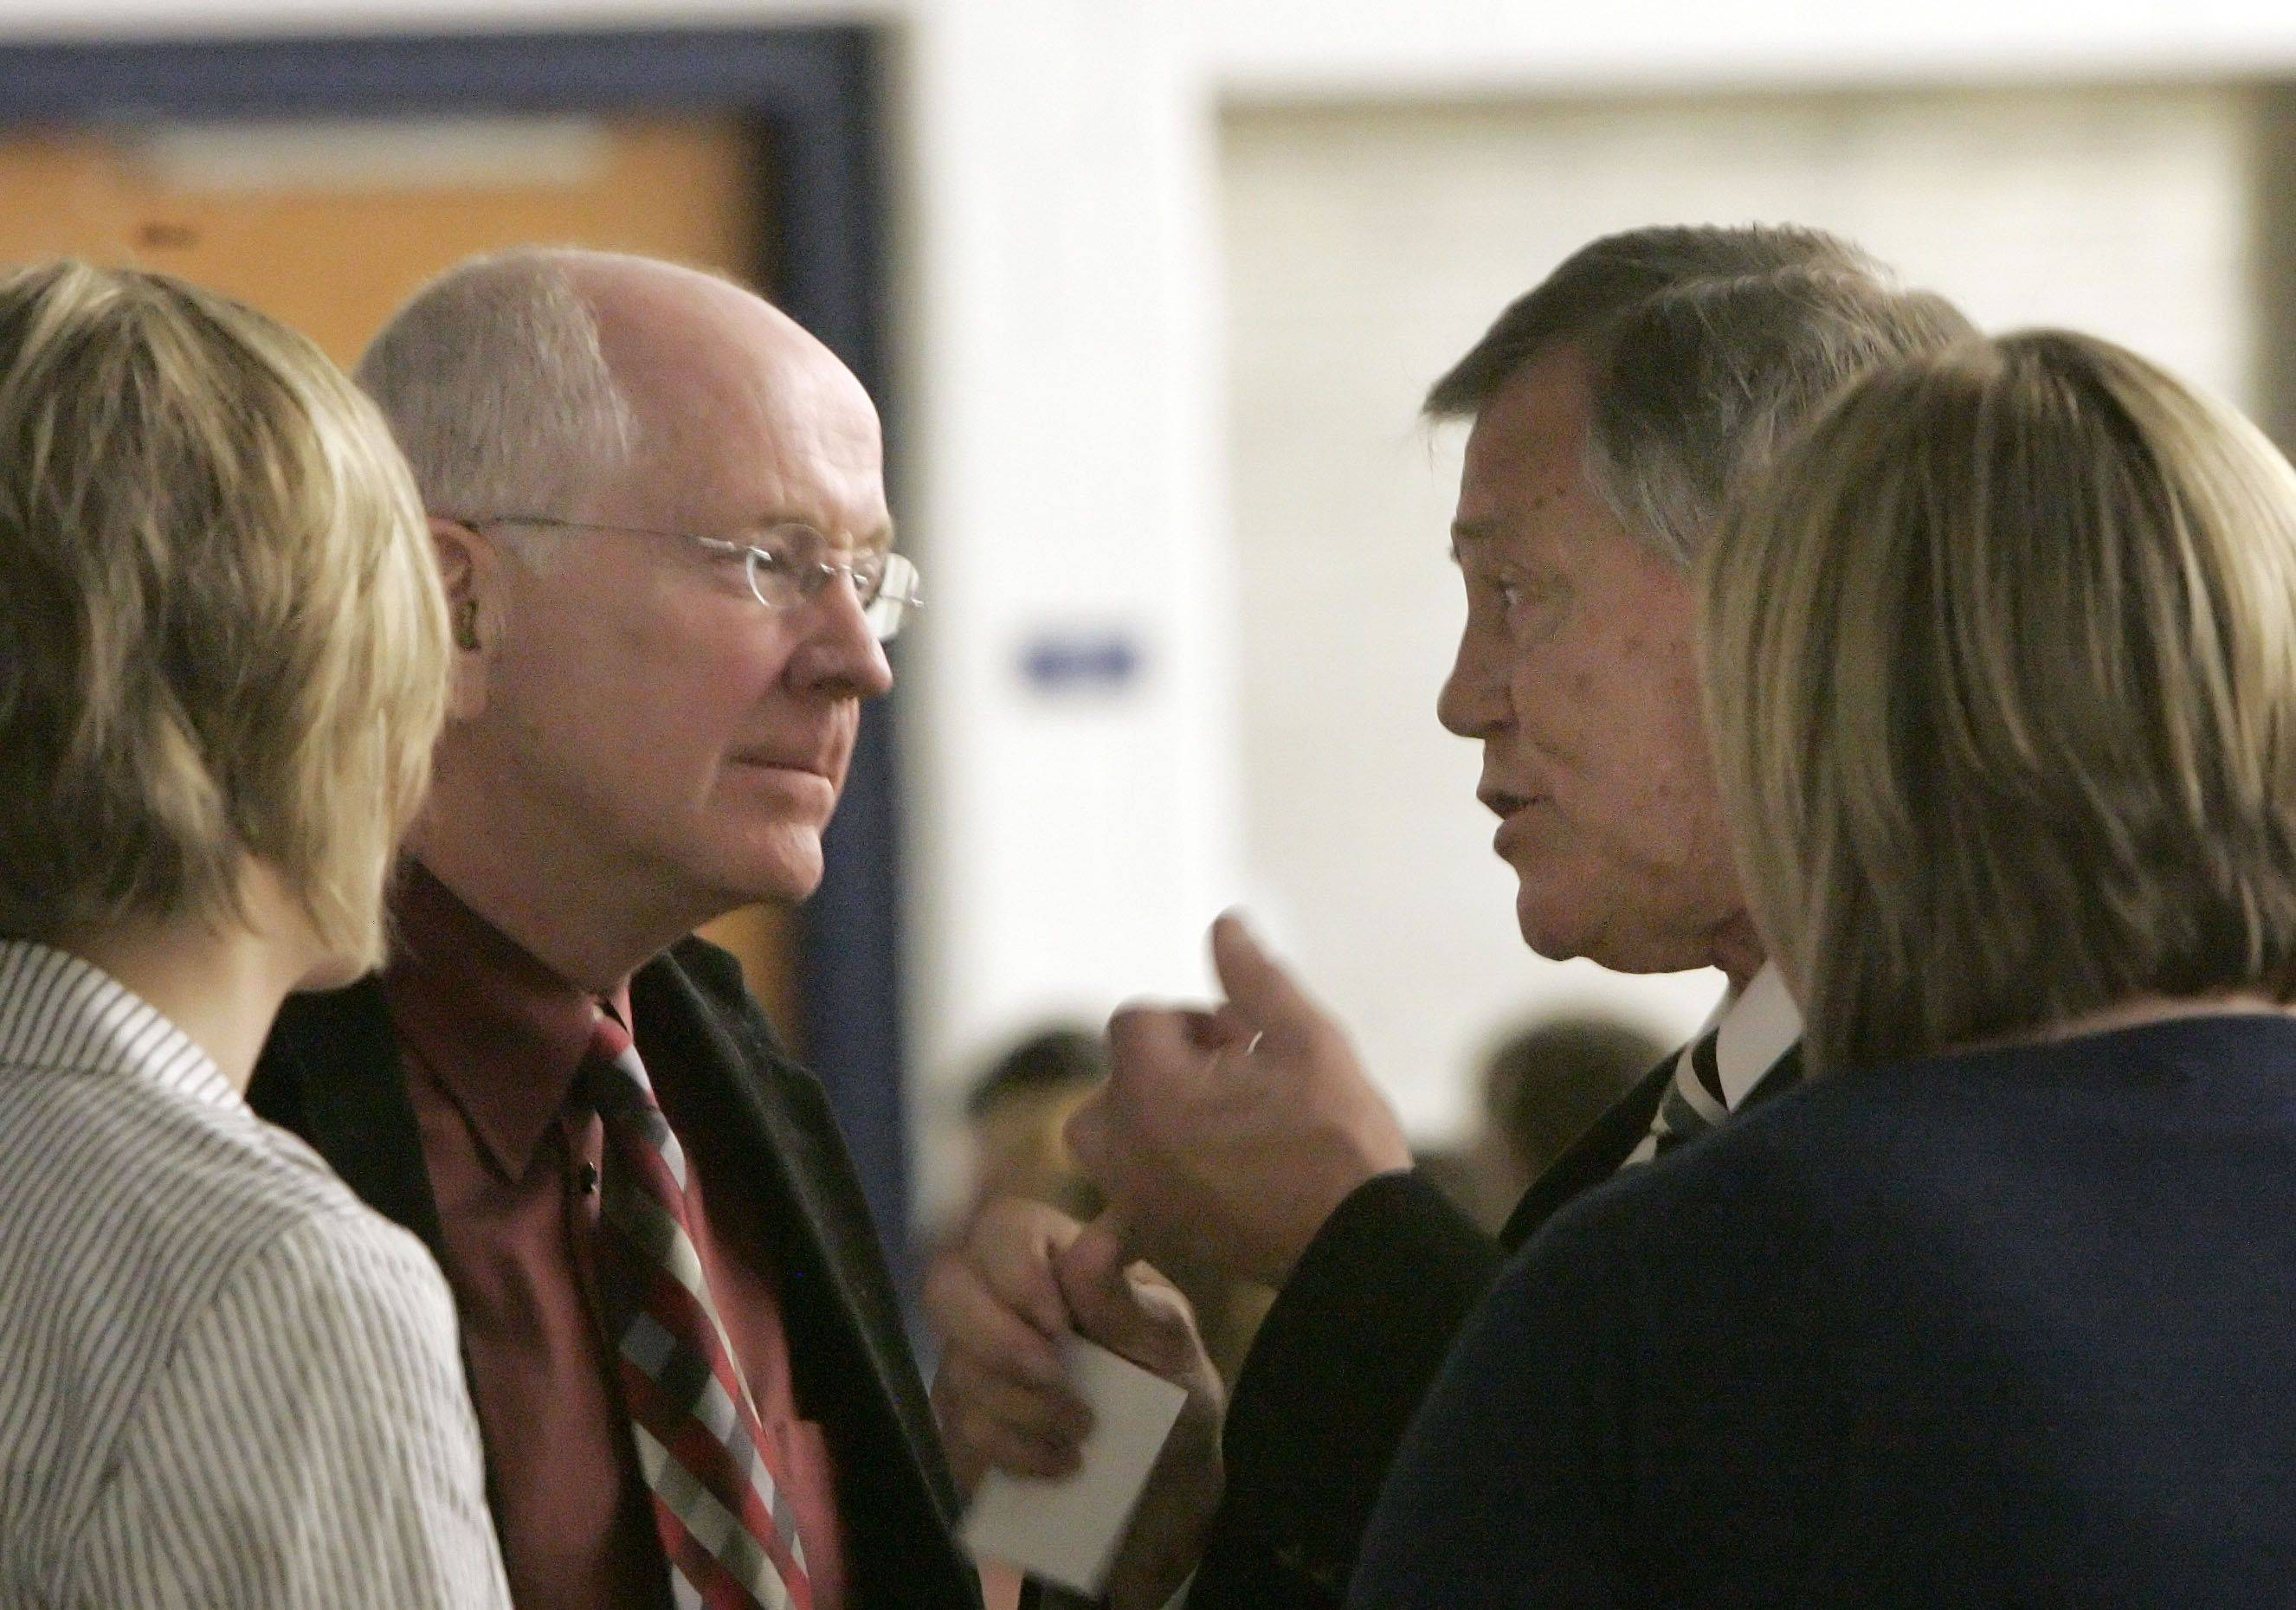 Minneapolis Psychologist Dr. David Walsh, left, and Bart Teal, founder of Blue Ribbon Schools of Excellence Inc. in South Carolina, talk during a conference at Grayslake Elementary District 46's Park Campus Friday.